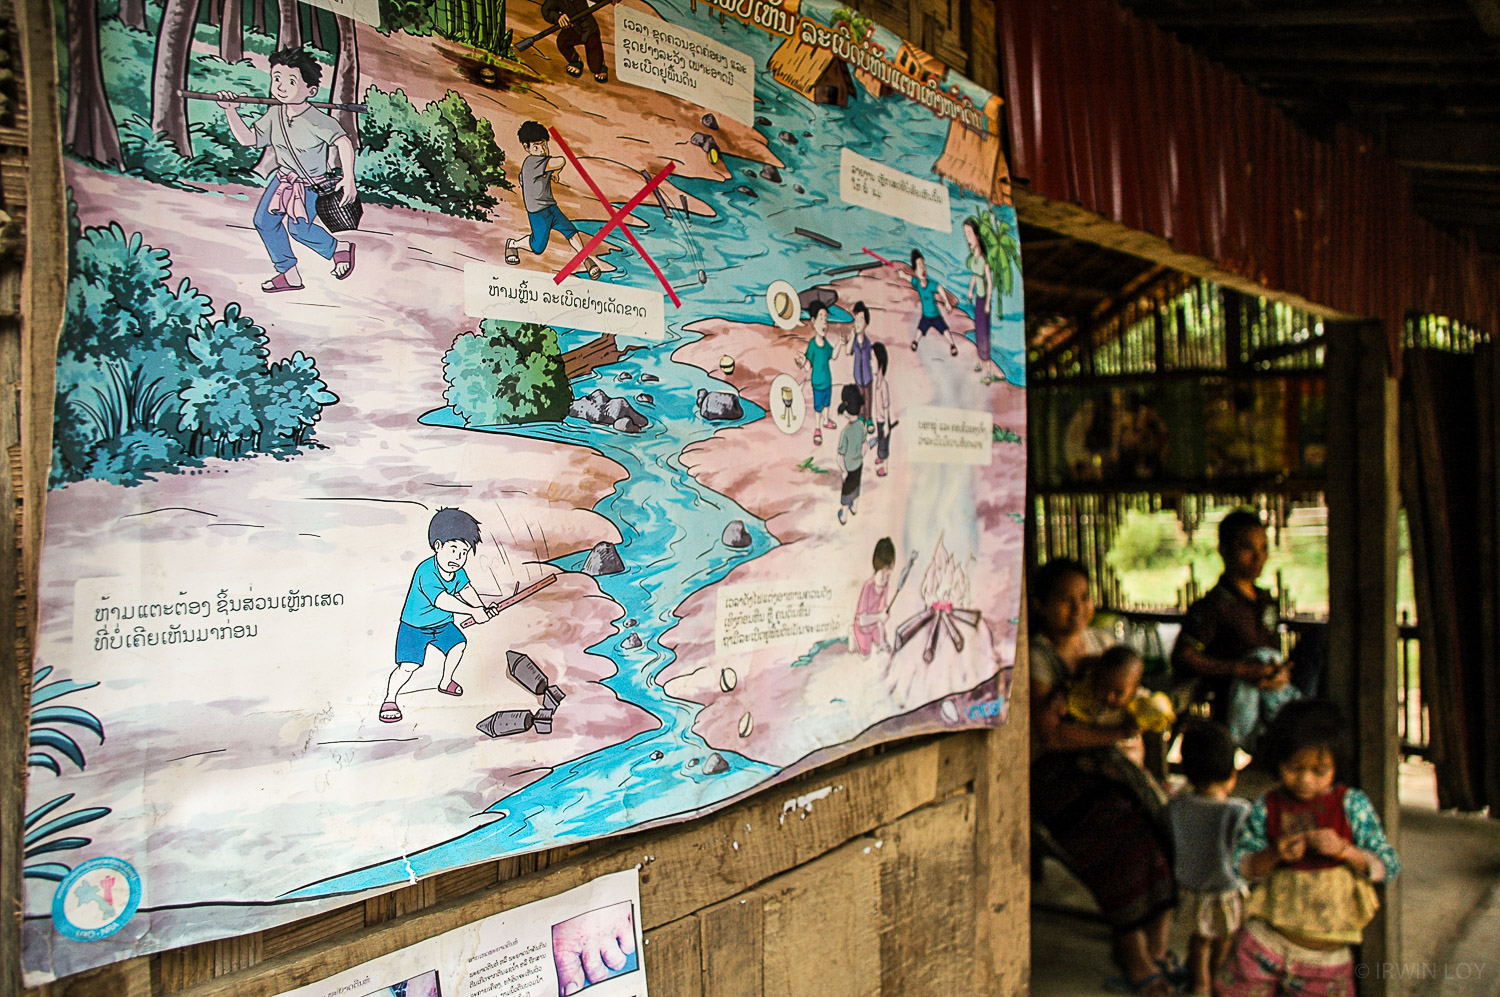 A poster warns of the dangers of buried cluster bombs and other munitions in a village in Sekong, Laos.